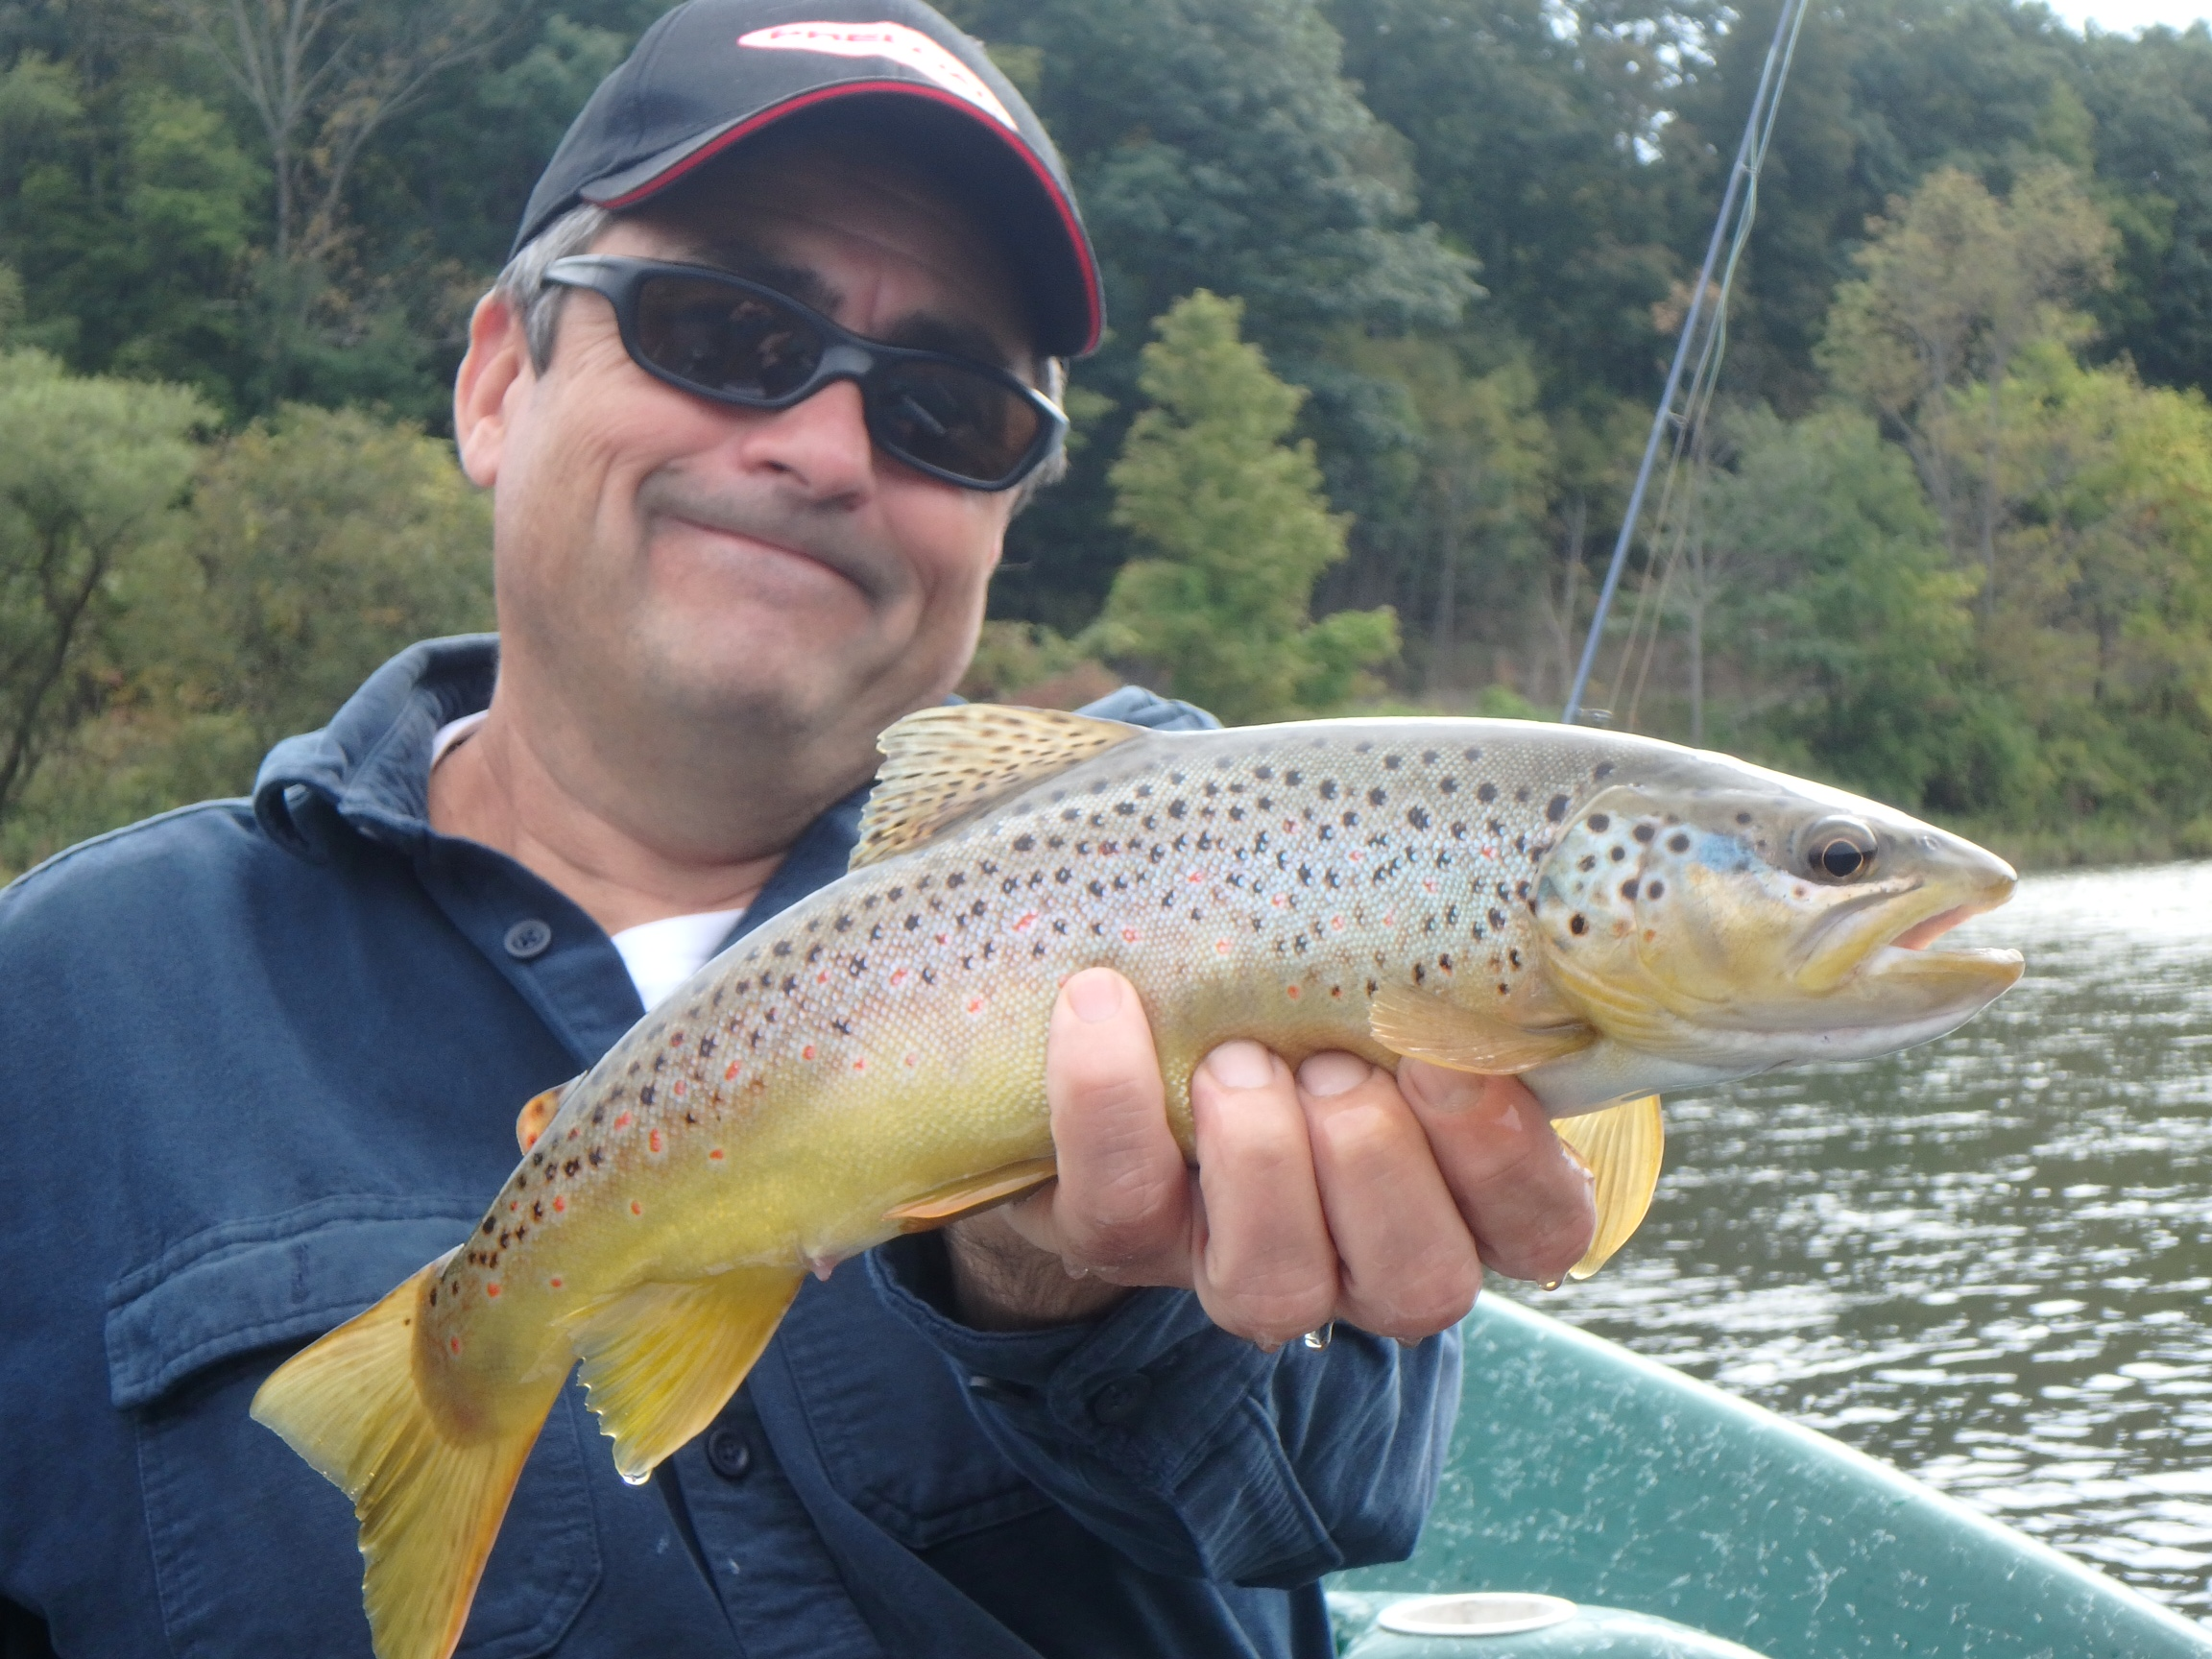 Tony D. with another nicely colored West Branch Brownie.